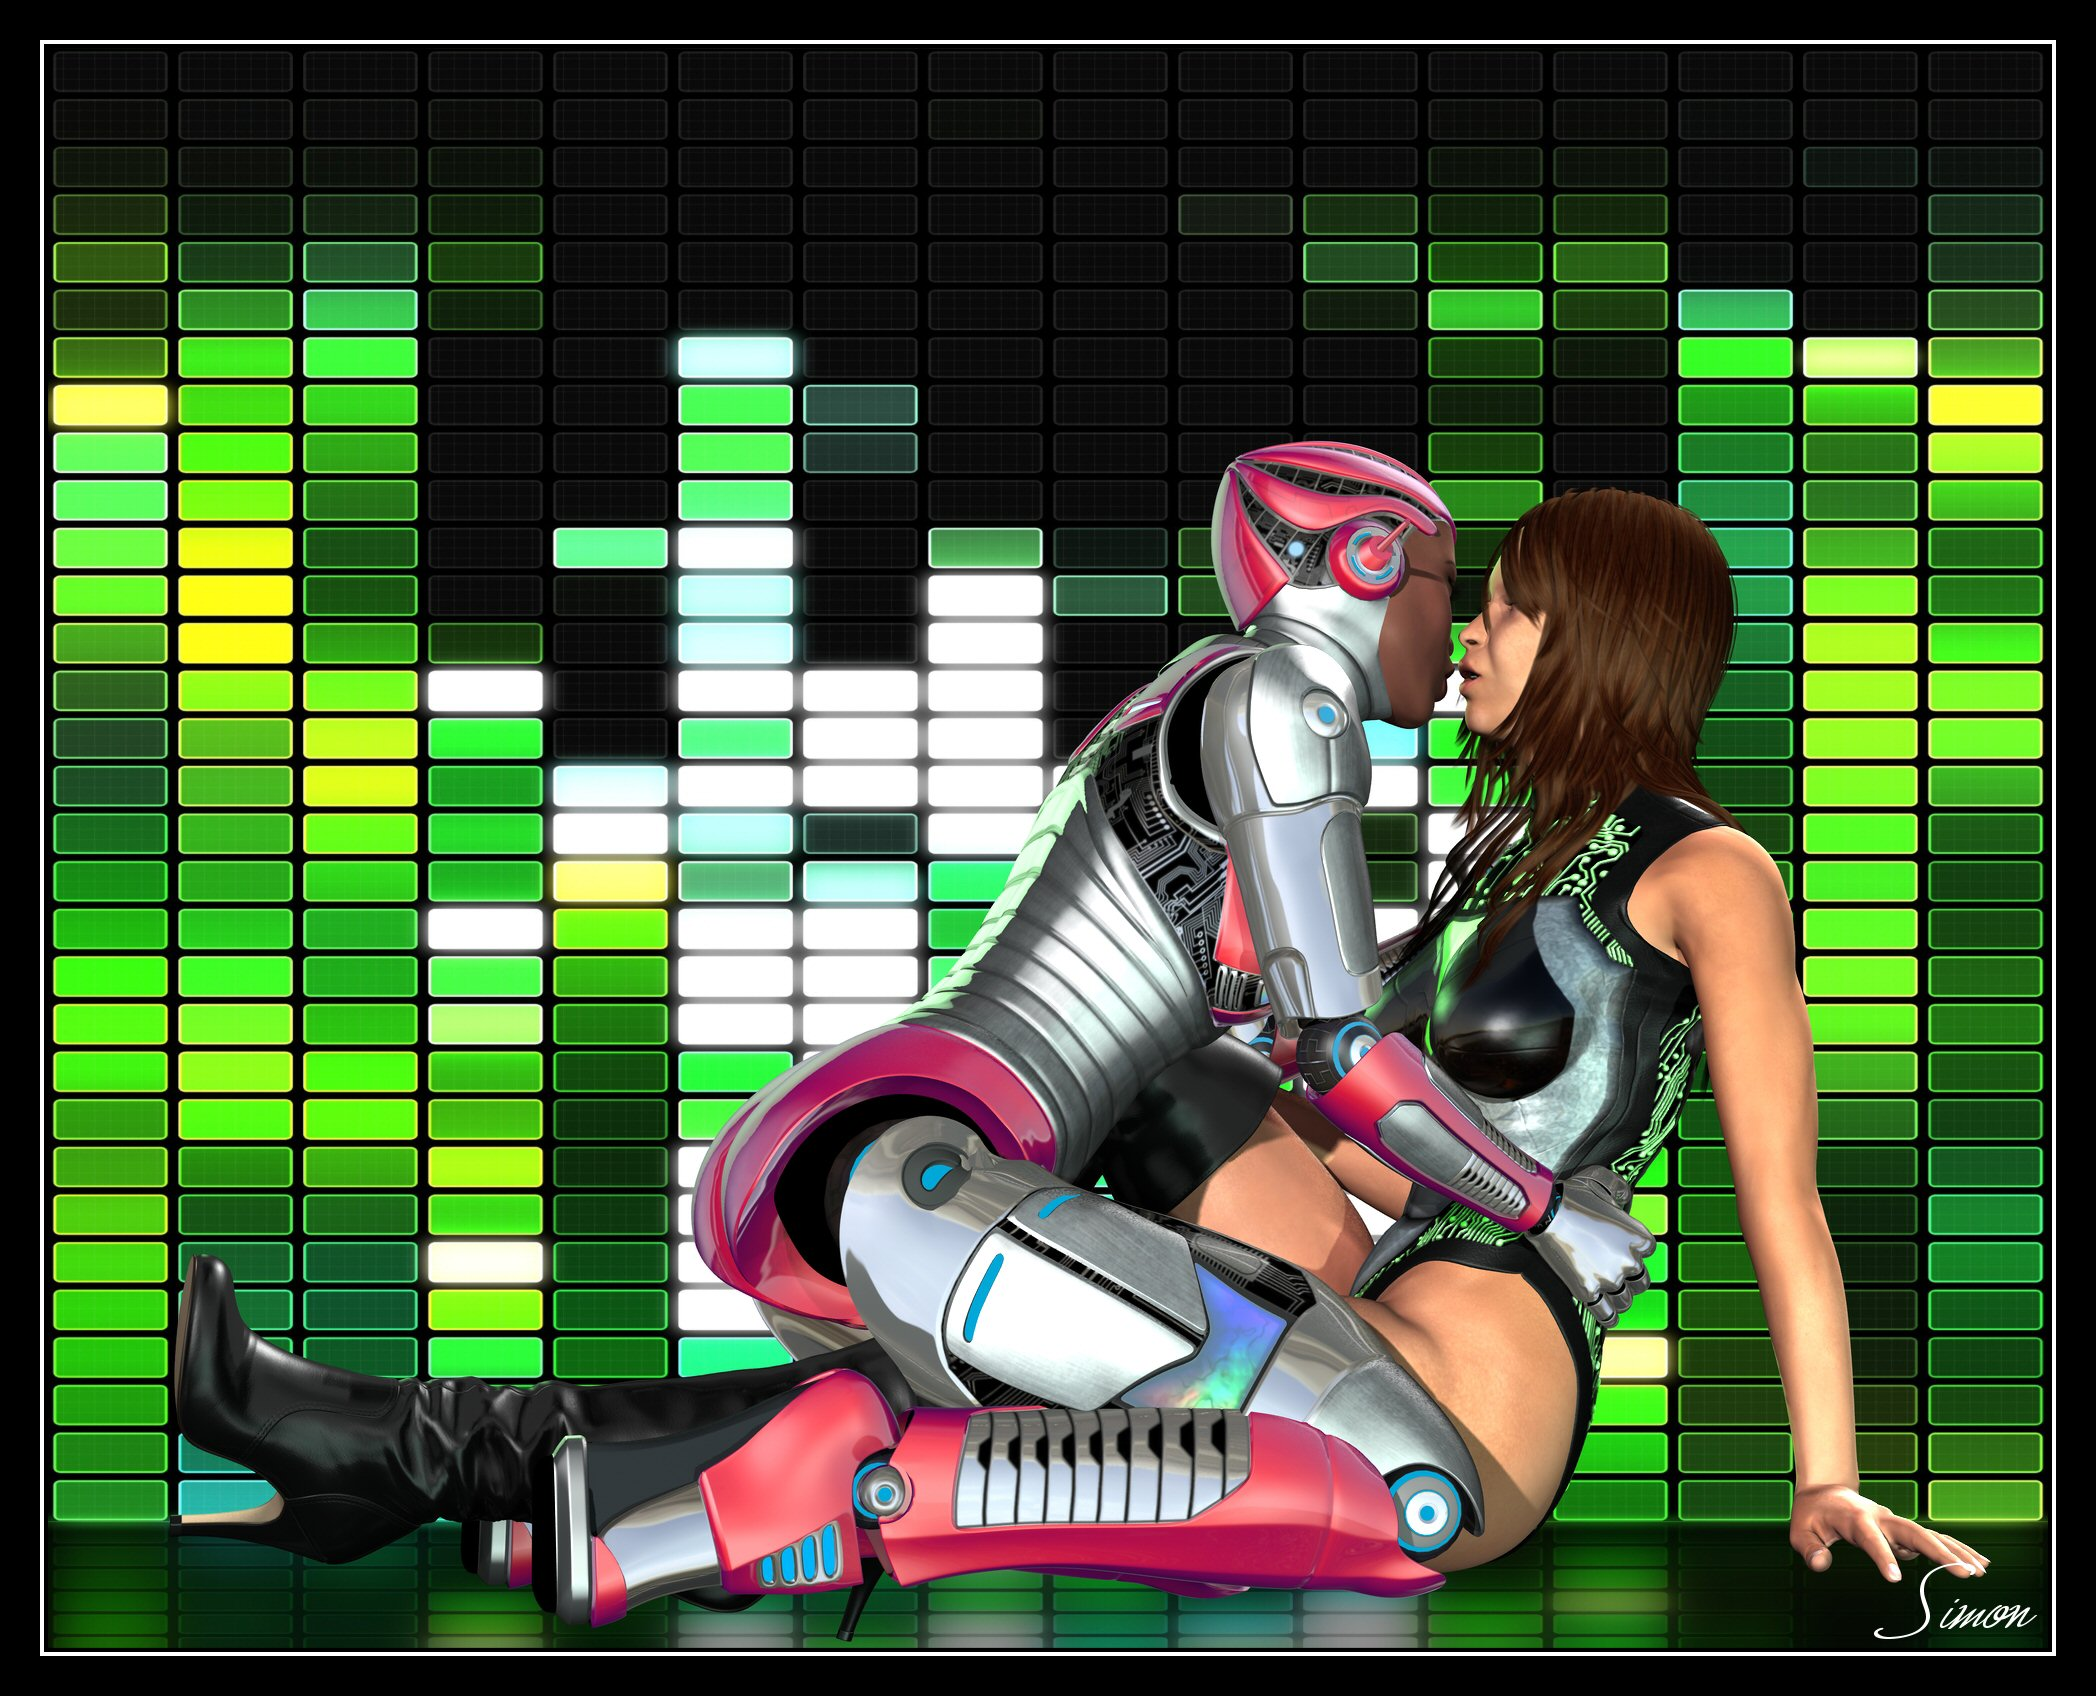 Have Cybersex 12